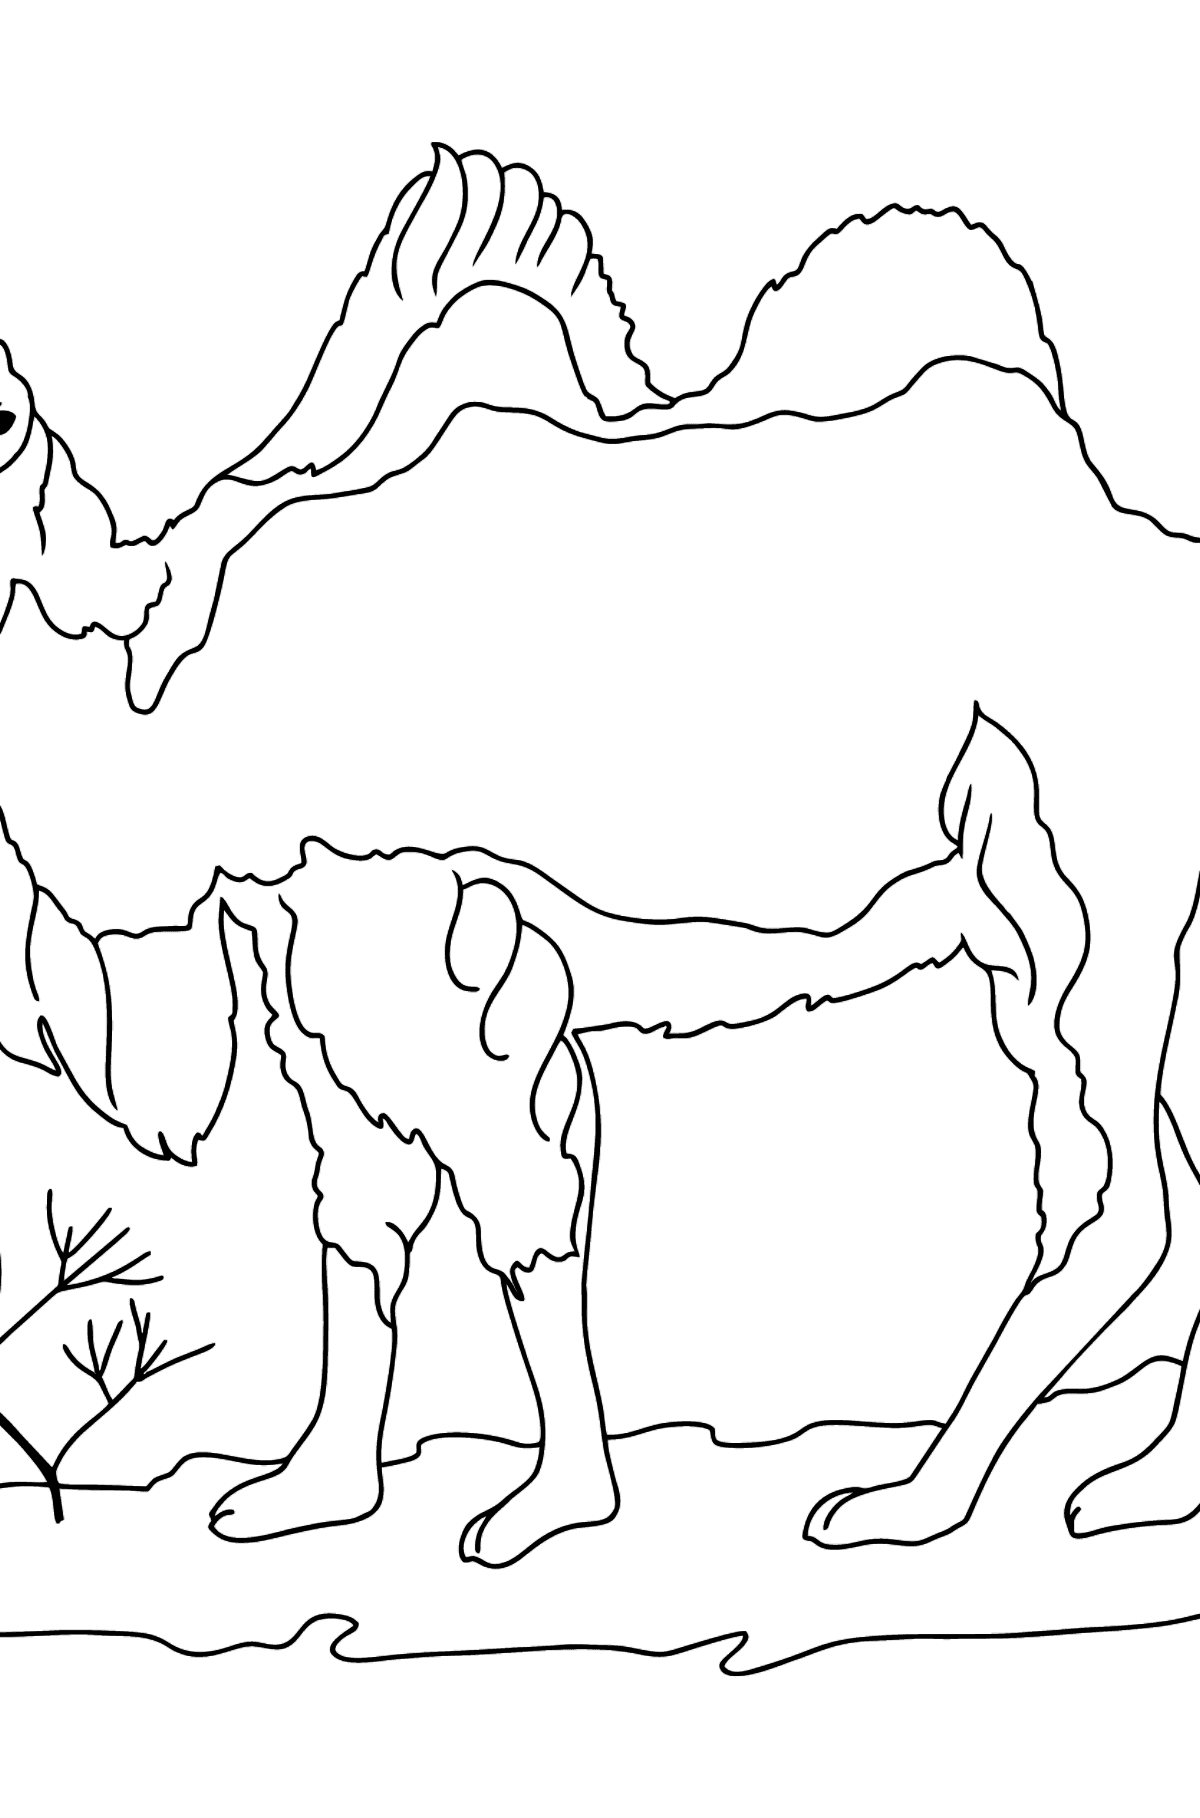 A Camel with Two Humped Coloring Page - Coloring Pages for Kids